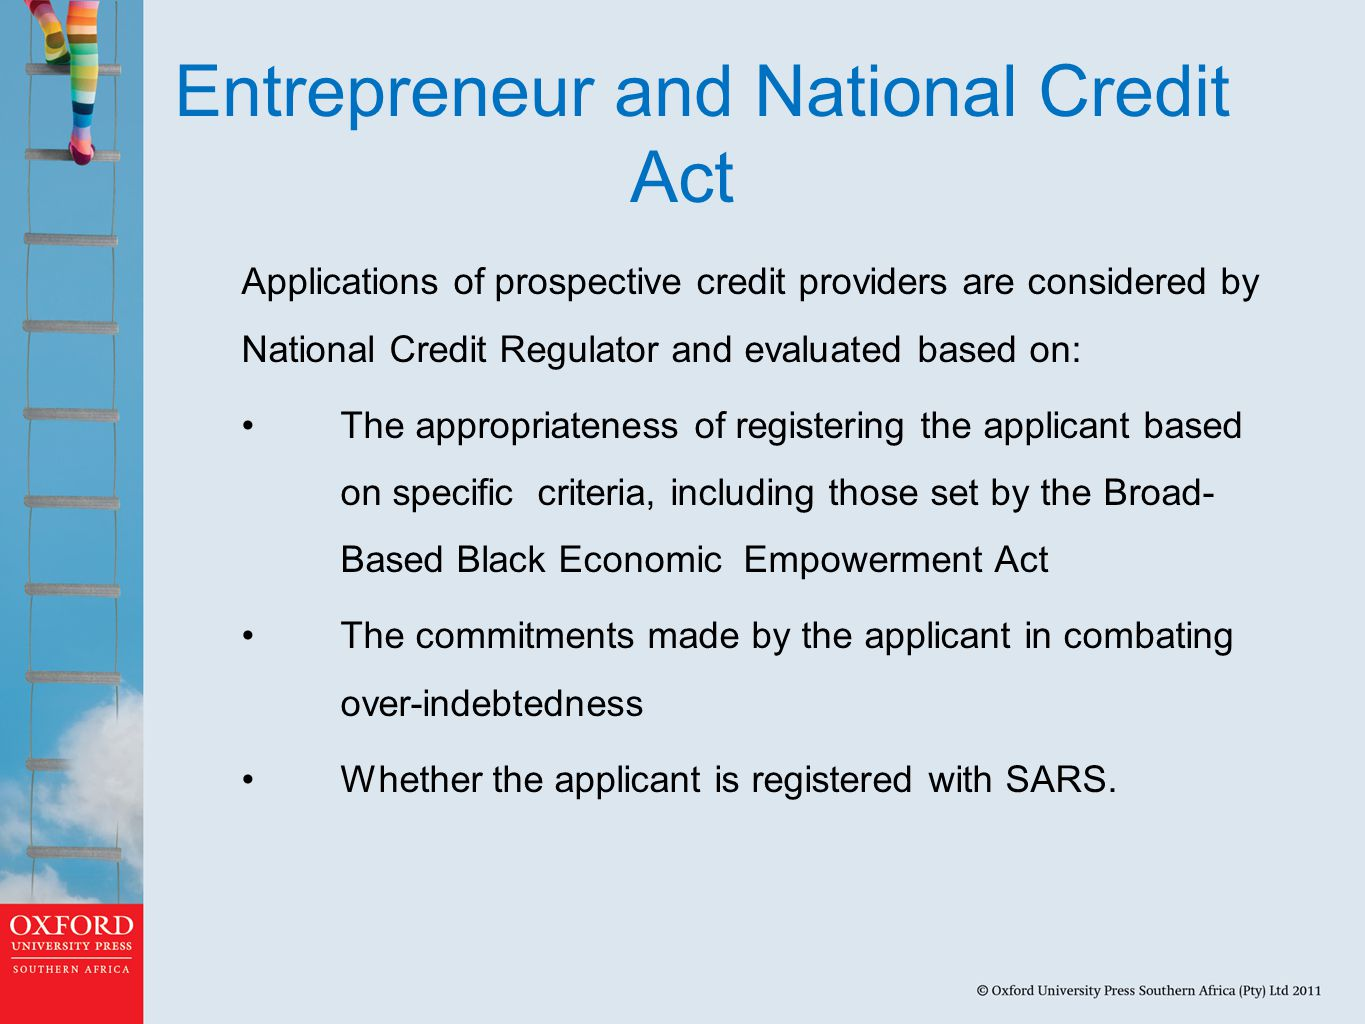 Entrepreneur and National Credit Act Applications of prospective credit providers are considered by National Credit Regulator and evaluated based on: The appropriateness of registering the applicant based on specific criteria, including those set by the Broad- Based Black Economic Empowerment Act The commitments made by the applicant in combating over-indebtedness Whether the applicant is registered with SARS.